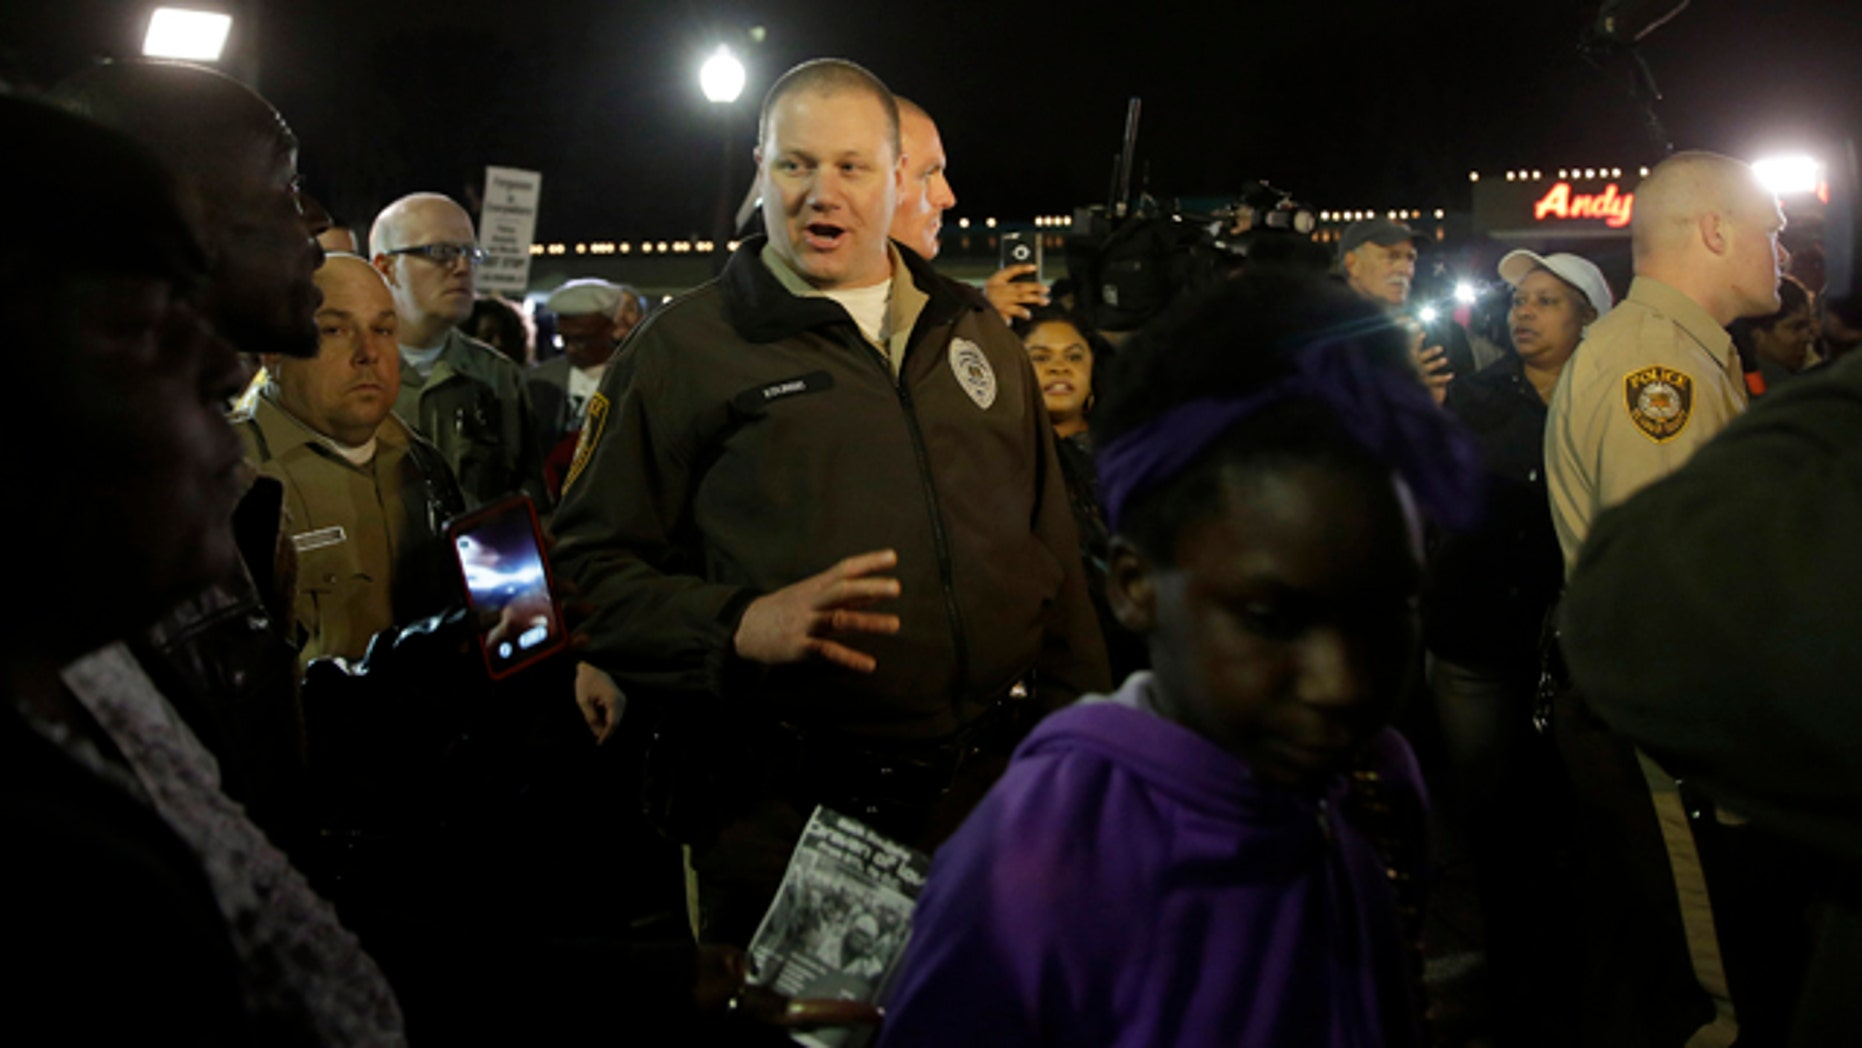 March 12, 2015: Members of the St. Louis County Police Department walk through a crowd of protesters trying to move them out of the street in front of the Ferguson Police Department. (AP Photo/Jeff Roberson)